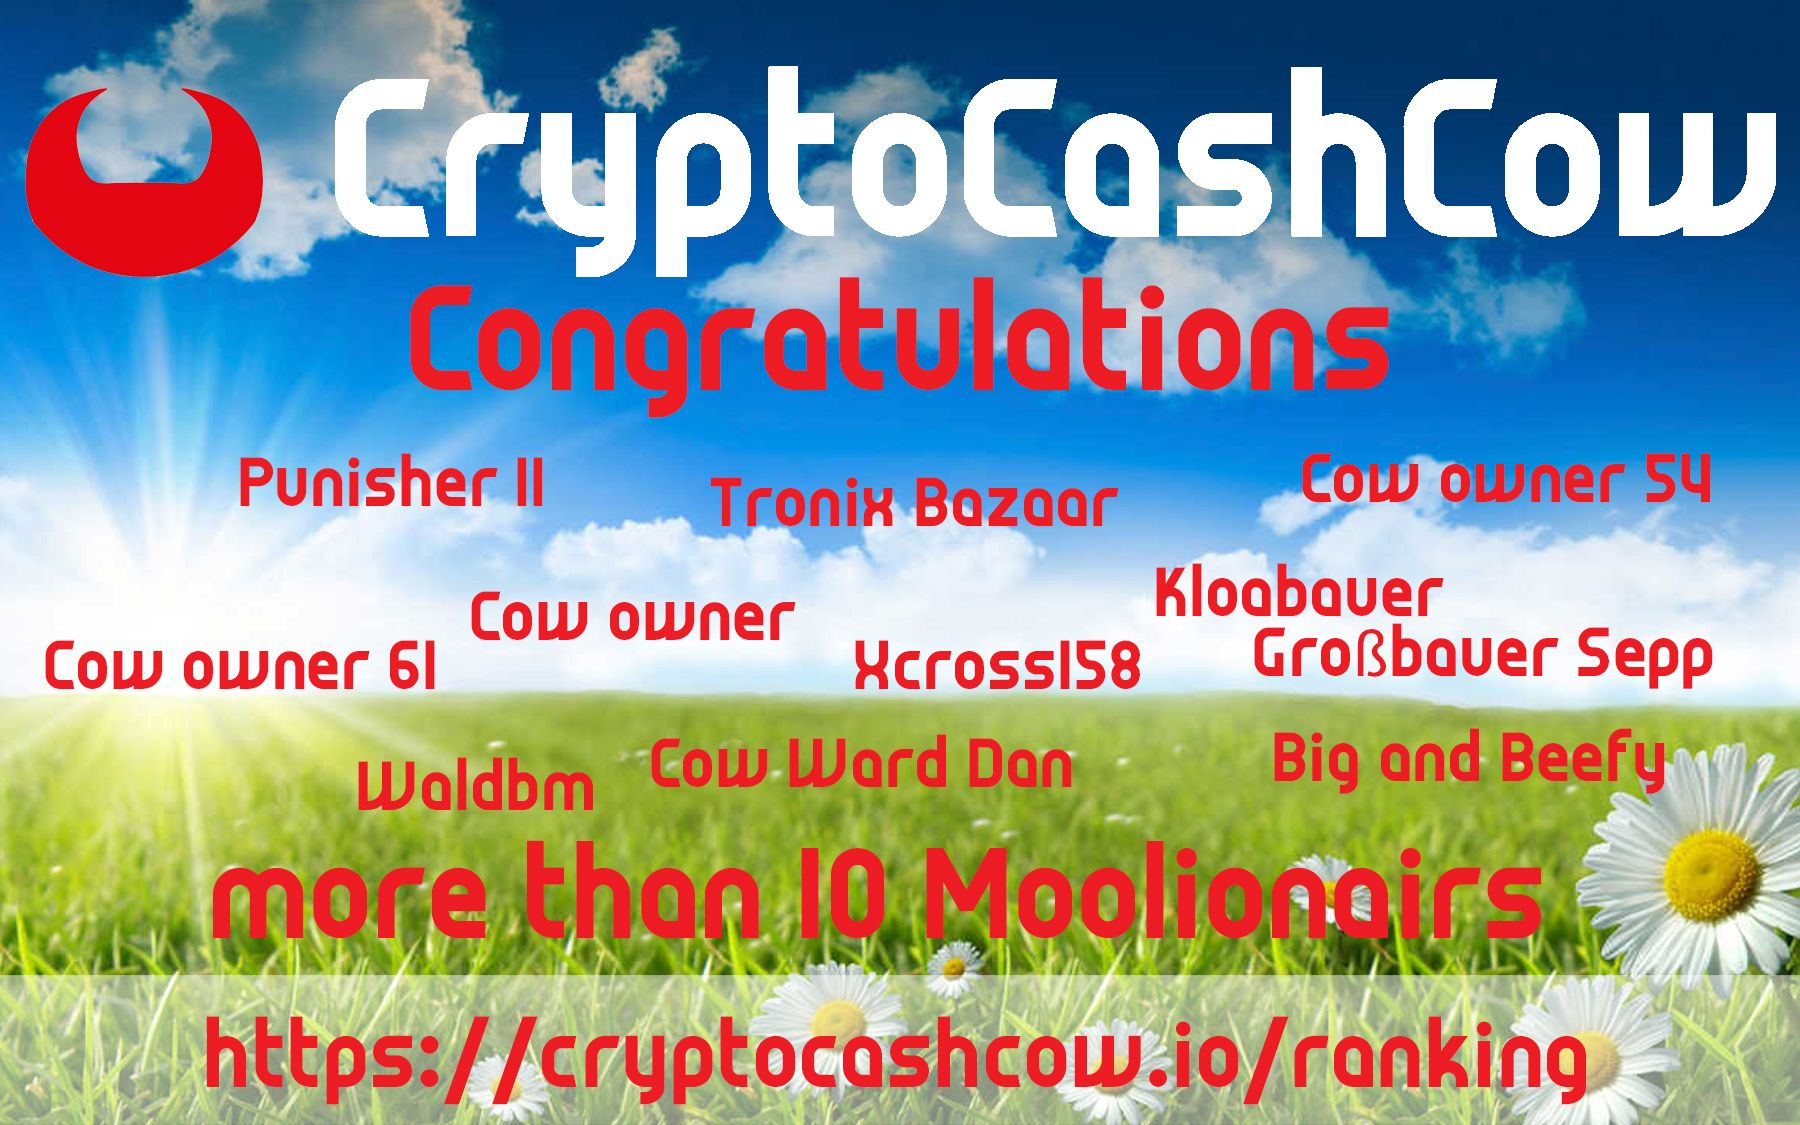 Cryptocashcow more that 10 moolionairs congratulations